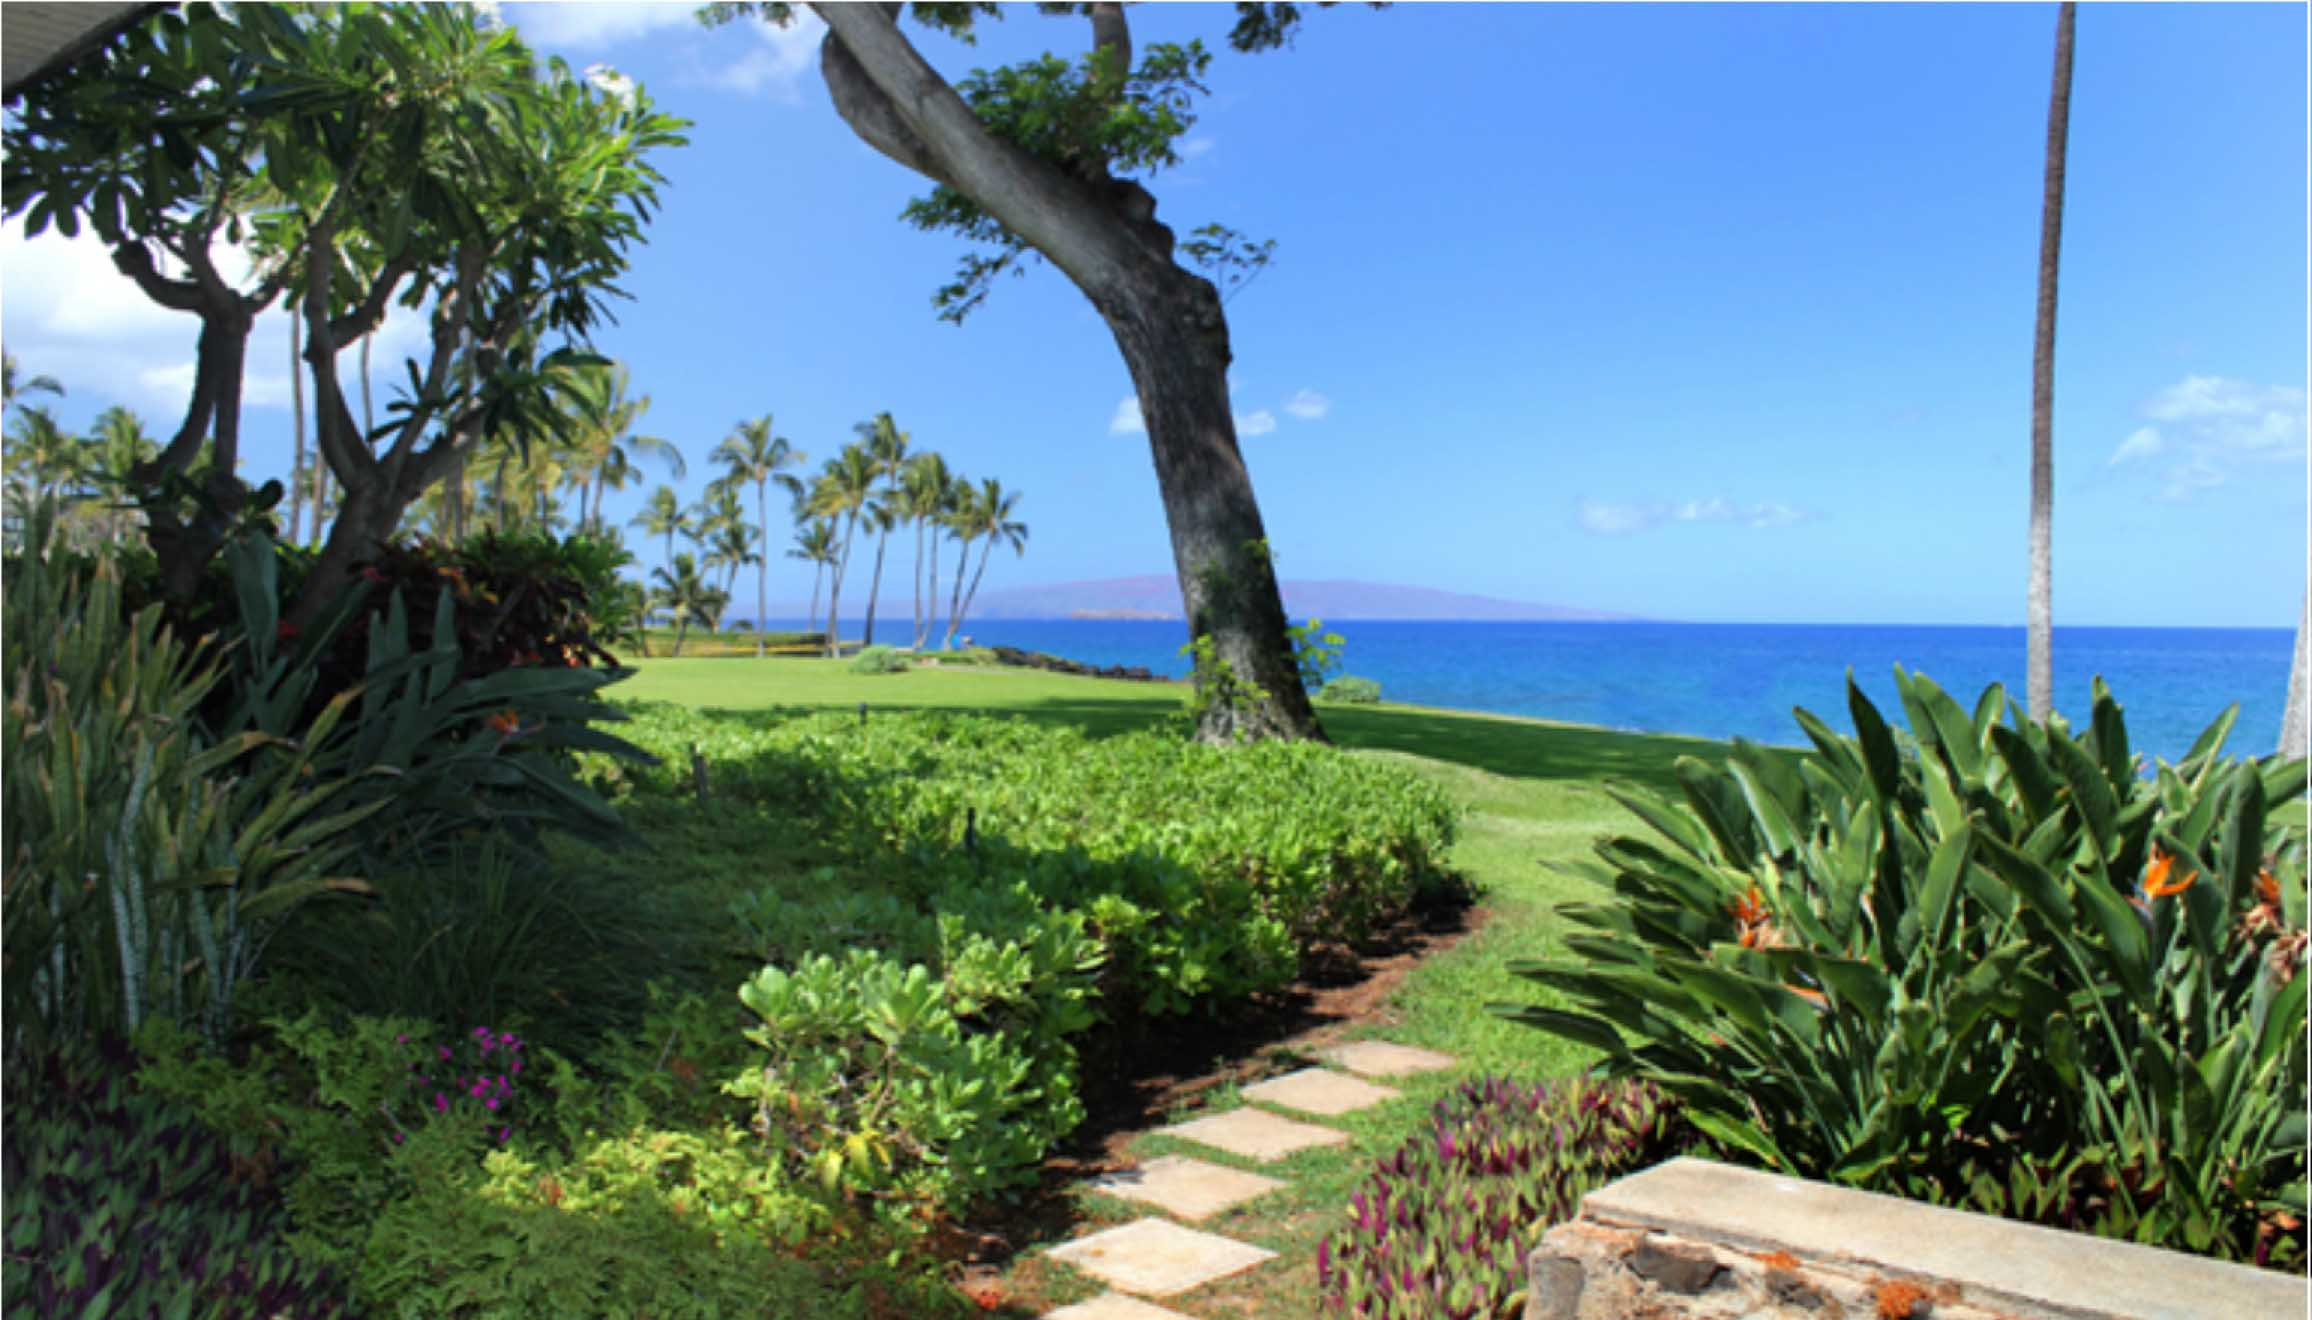 Walk on grassy lawn from deck to beach